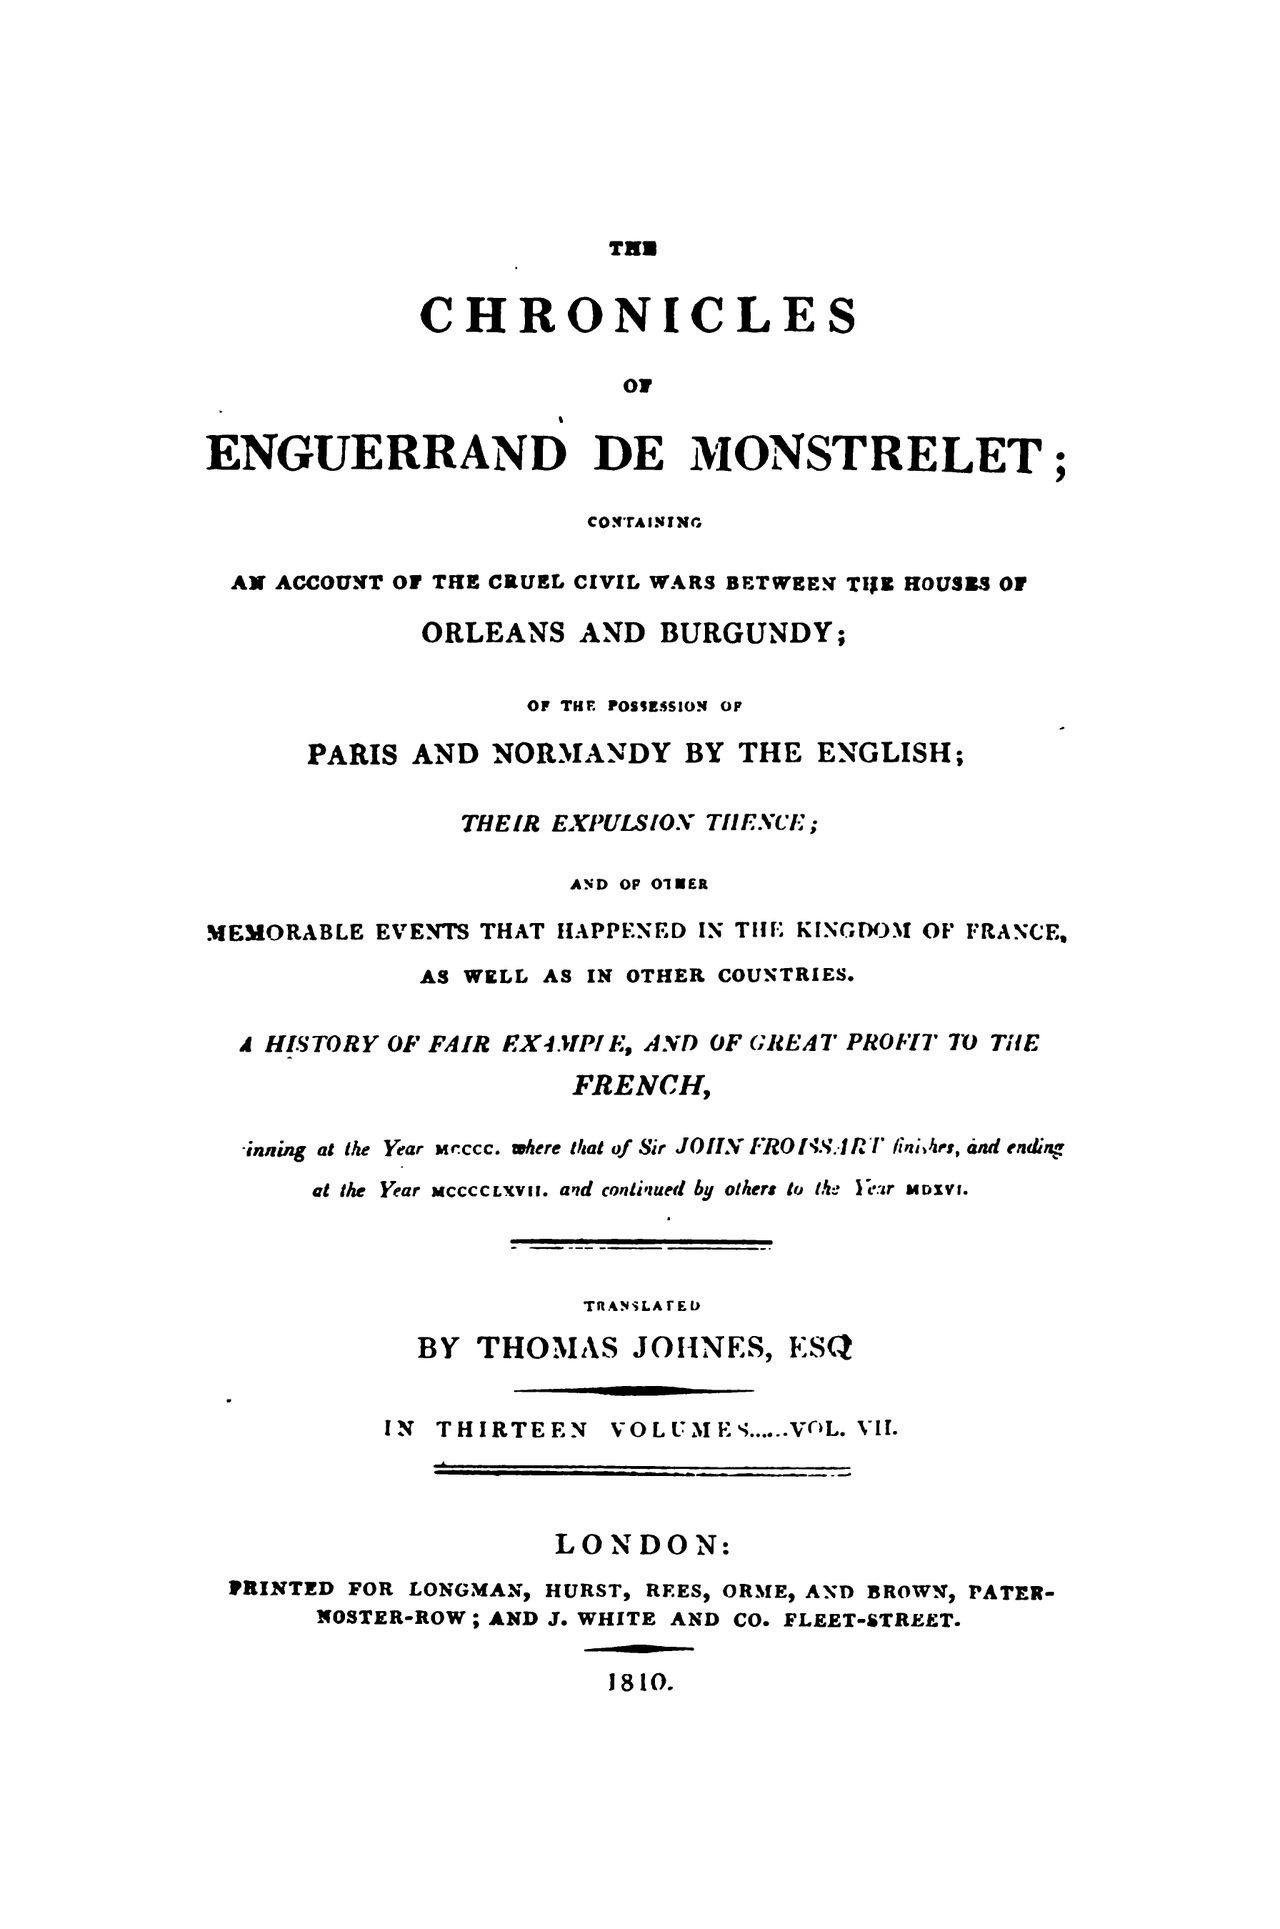 Enguerrand de Monstrelet chronicle vol.7